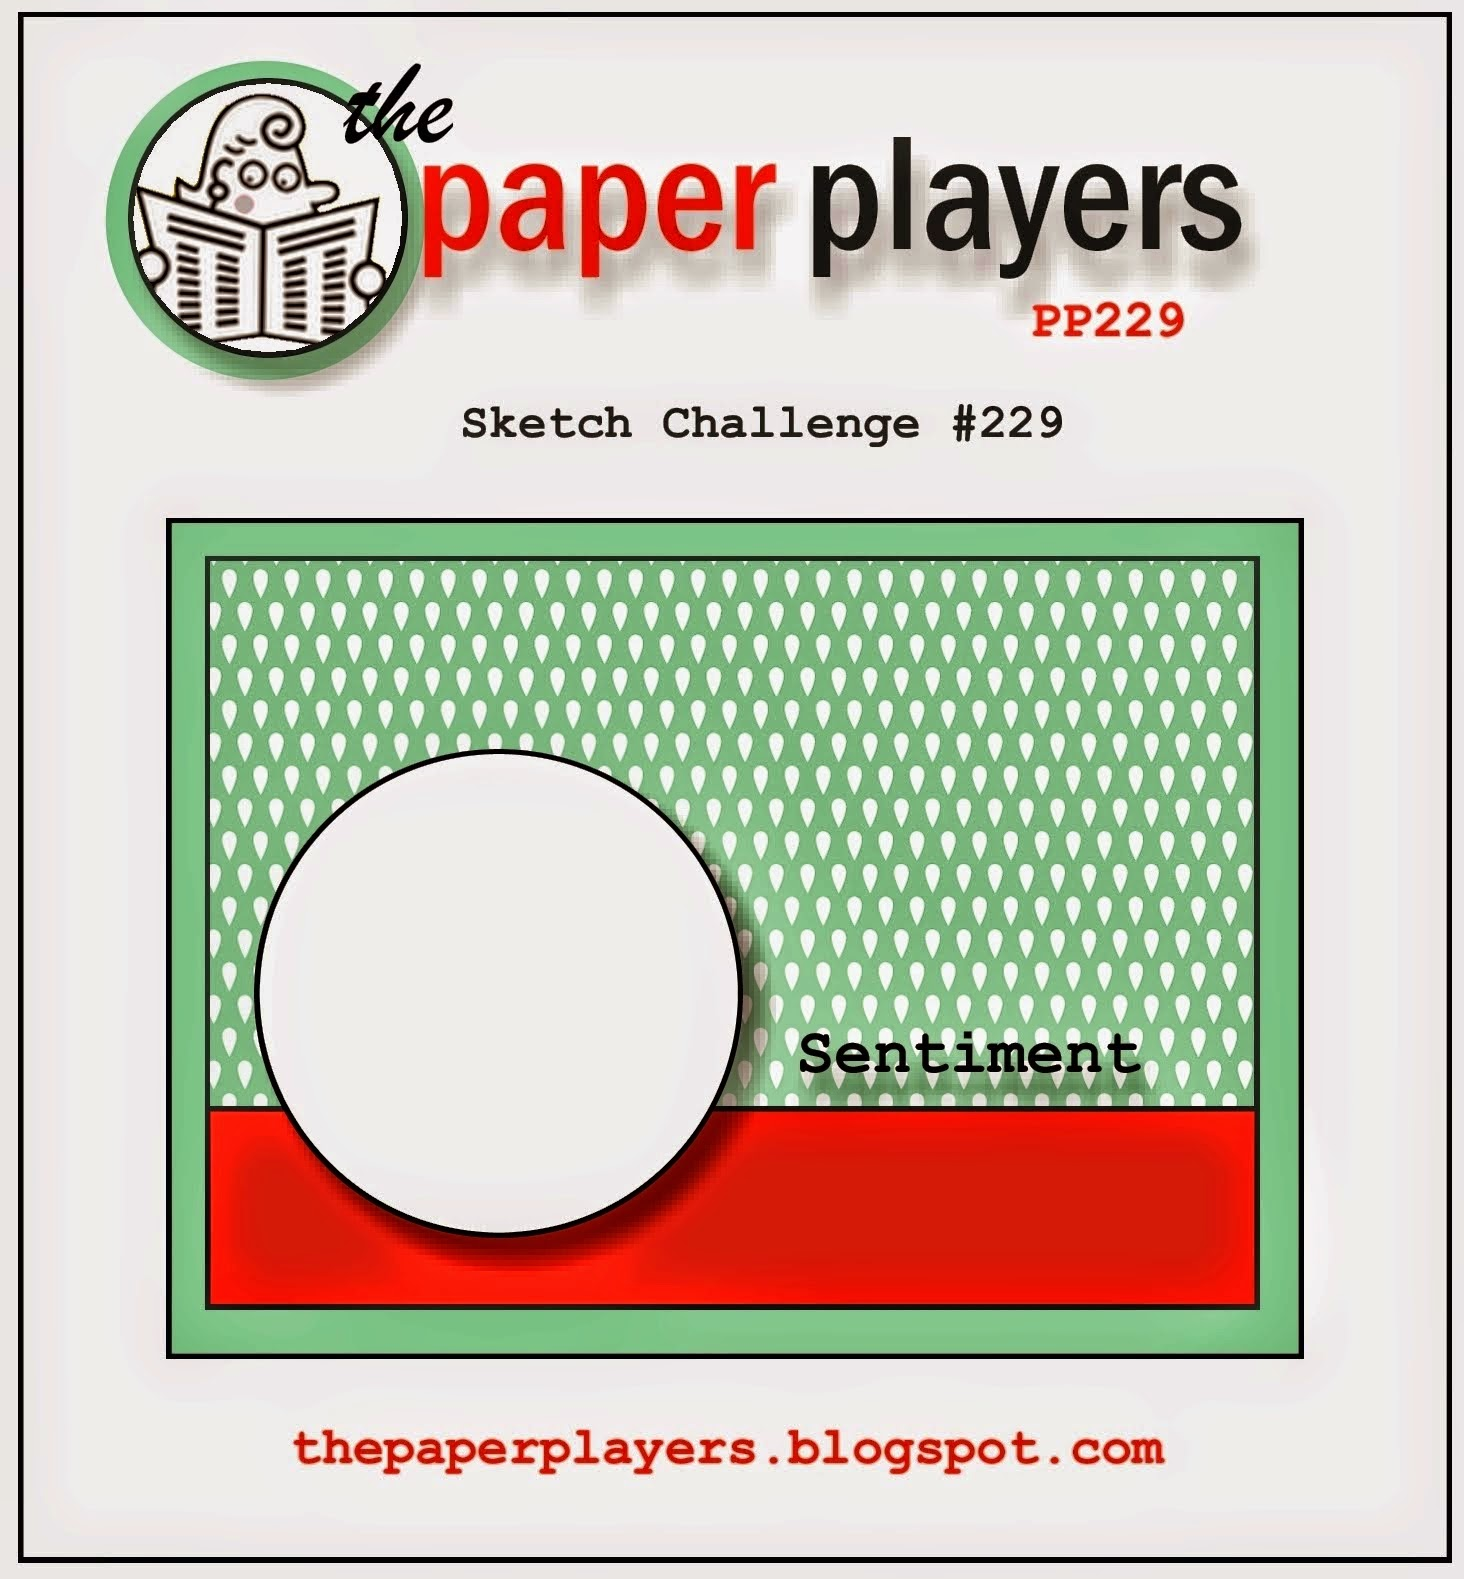 http://thepaperplayers.blogspot.ca/2015/01/paper-players-challenge-229-jaydees.html